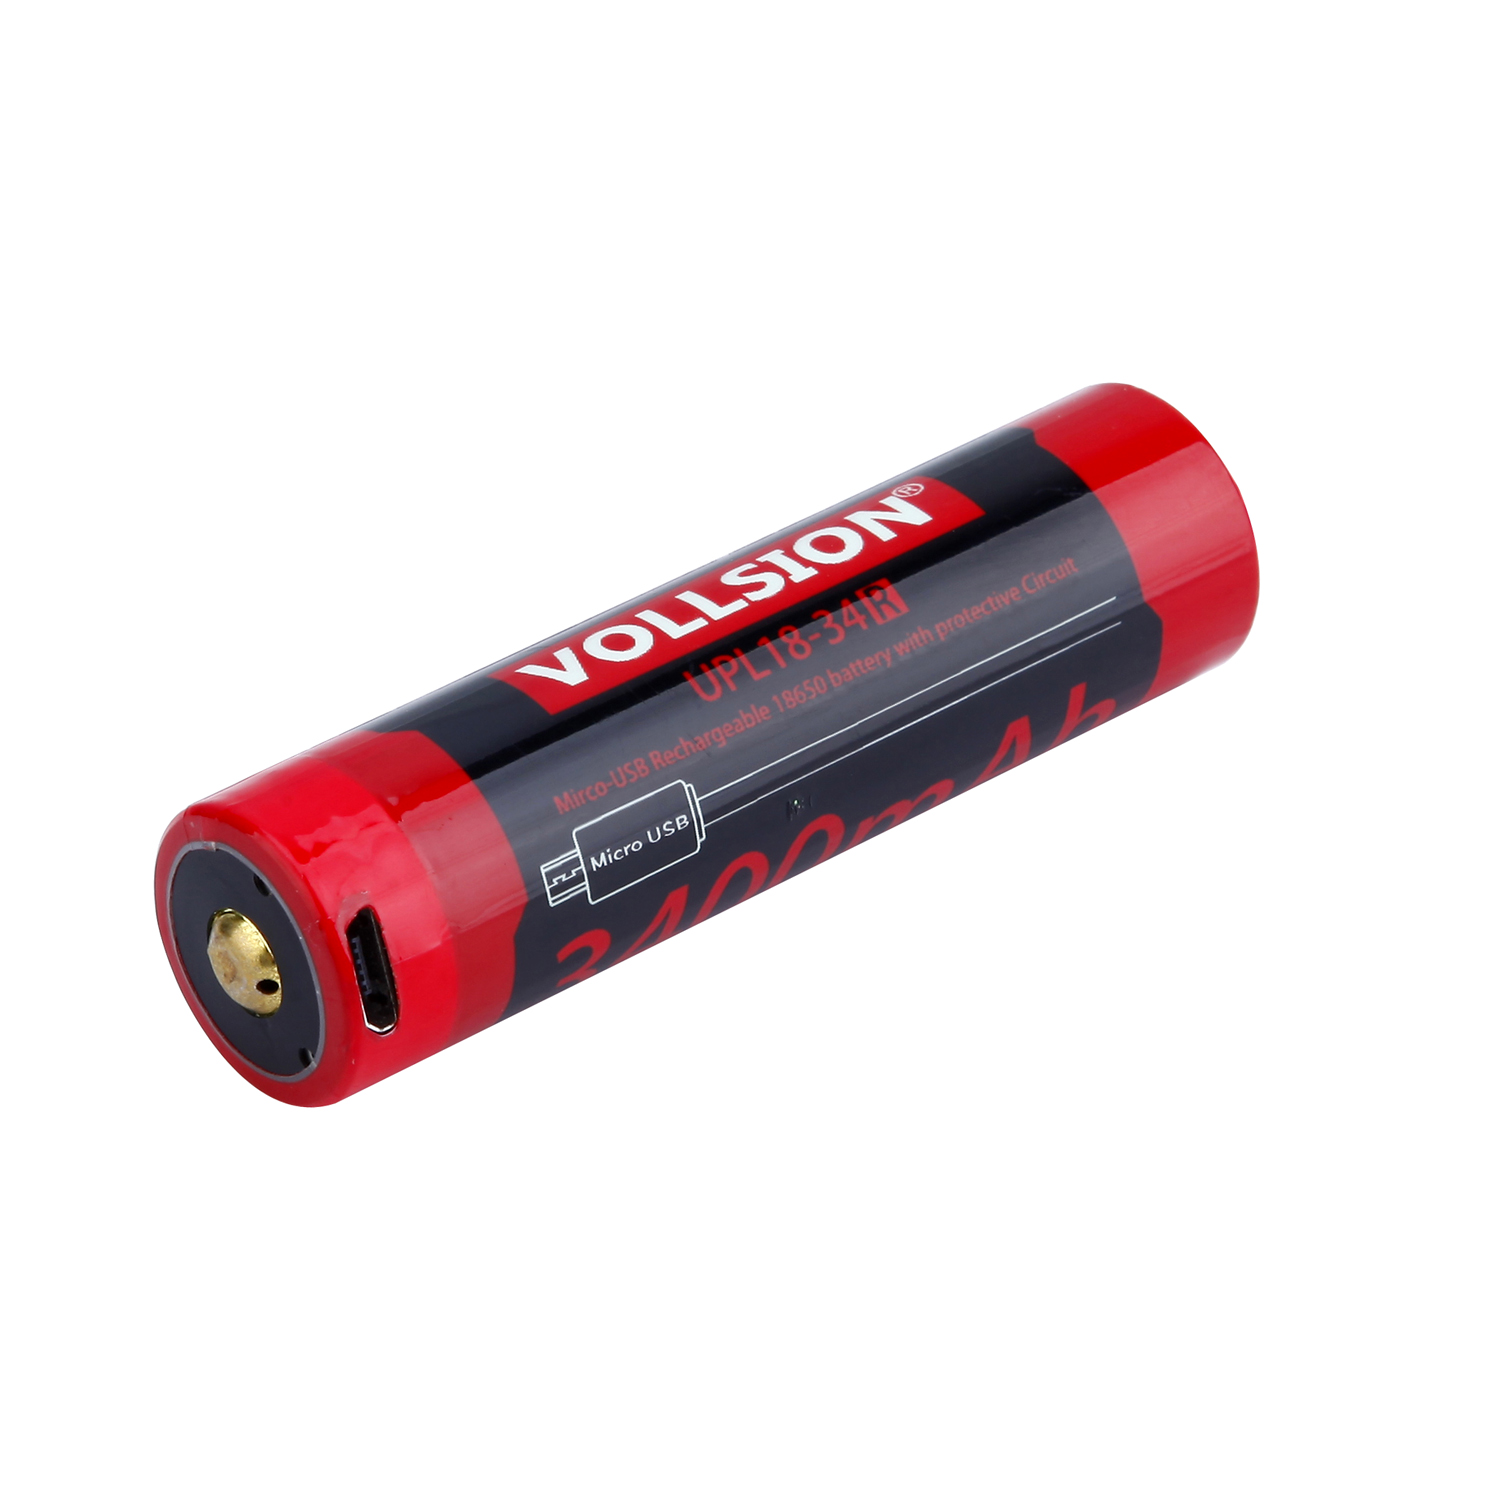 UPL18-34R Built in Mirco-USB charge 3400mAH 18650 battery with protective Circuit